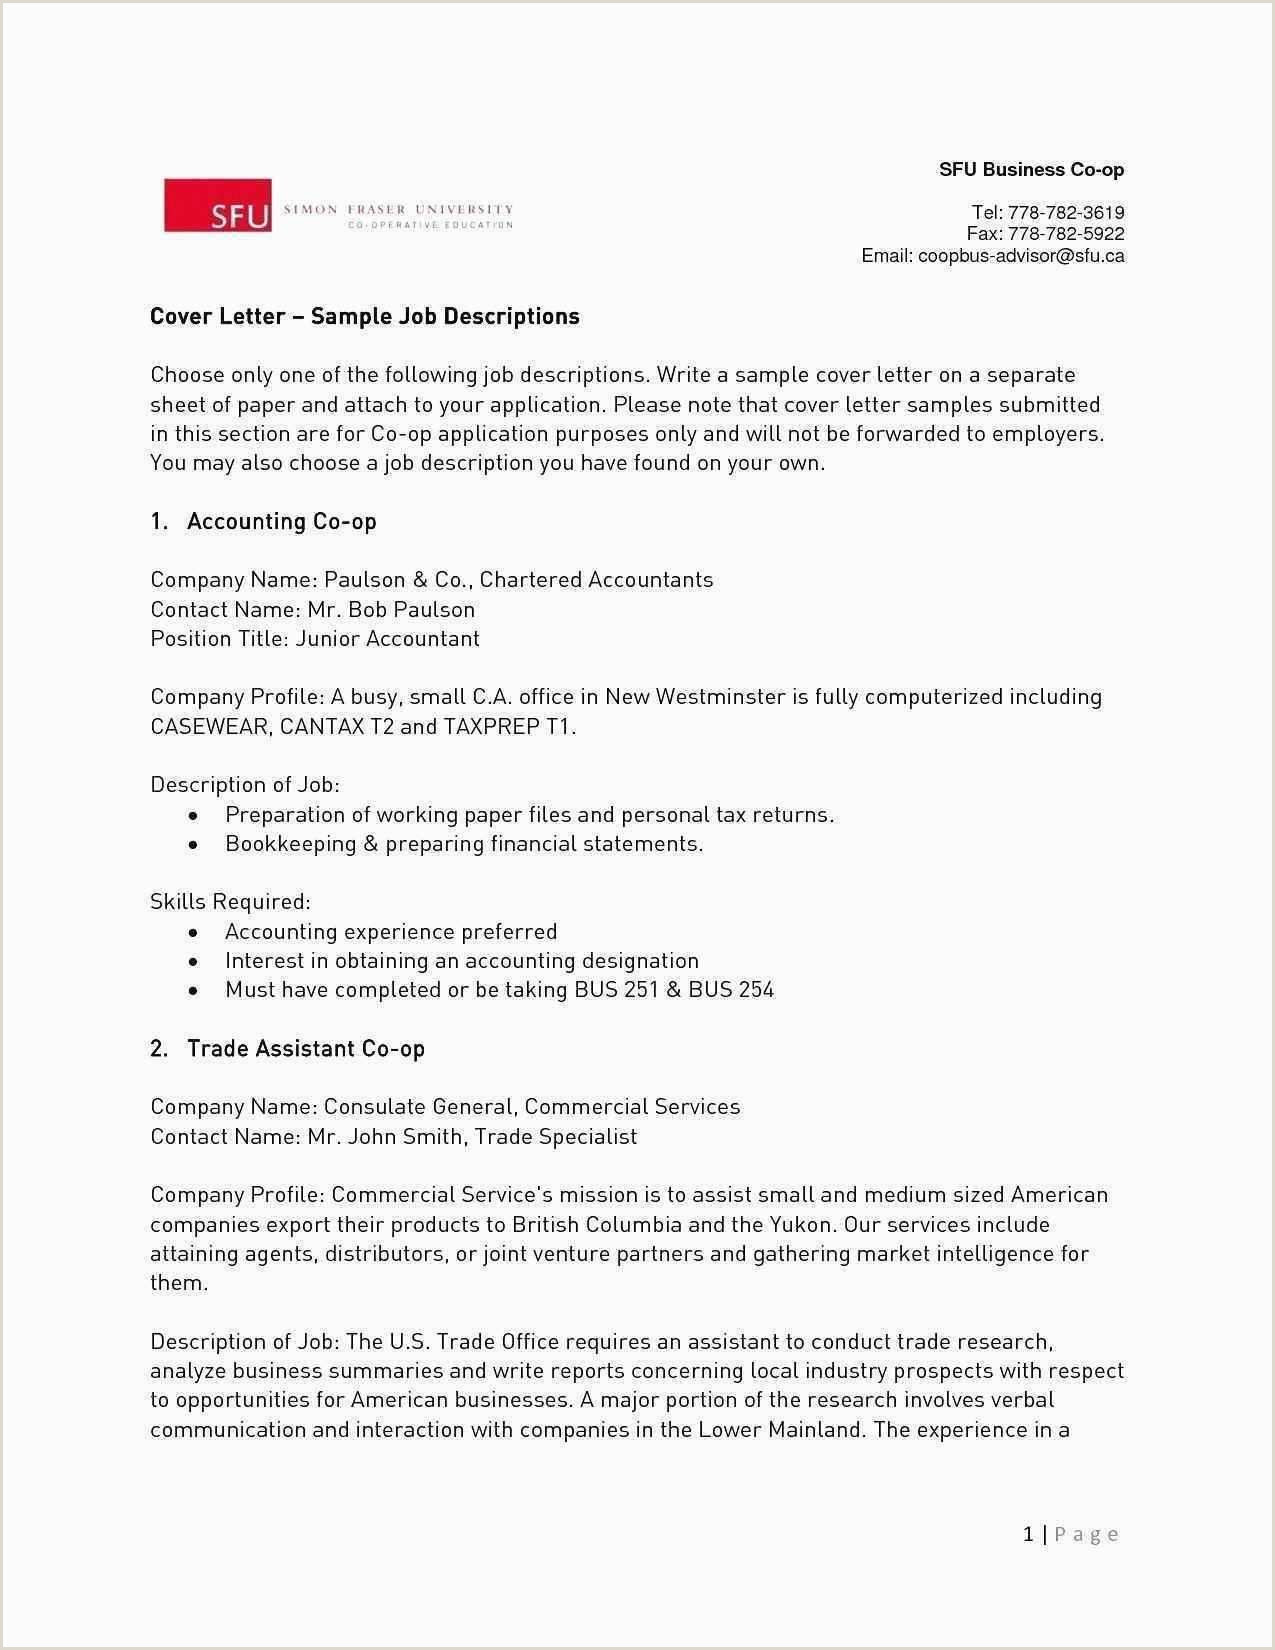 Accountant Cover Letter Sample Accountant Resume Examples Best Cover Sheet for Resume Best